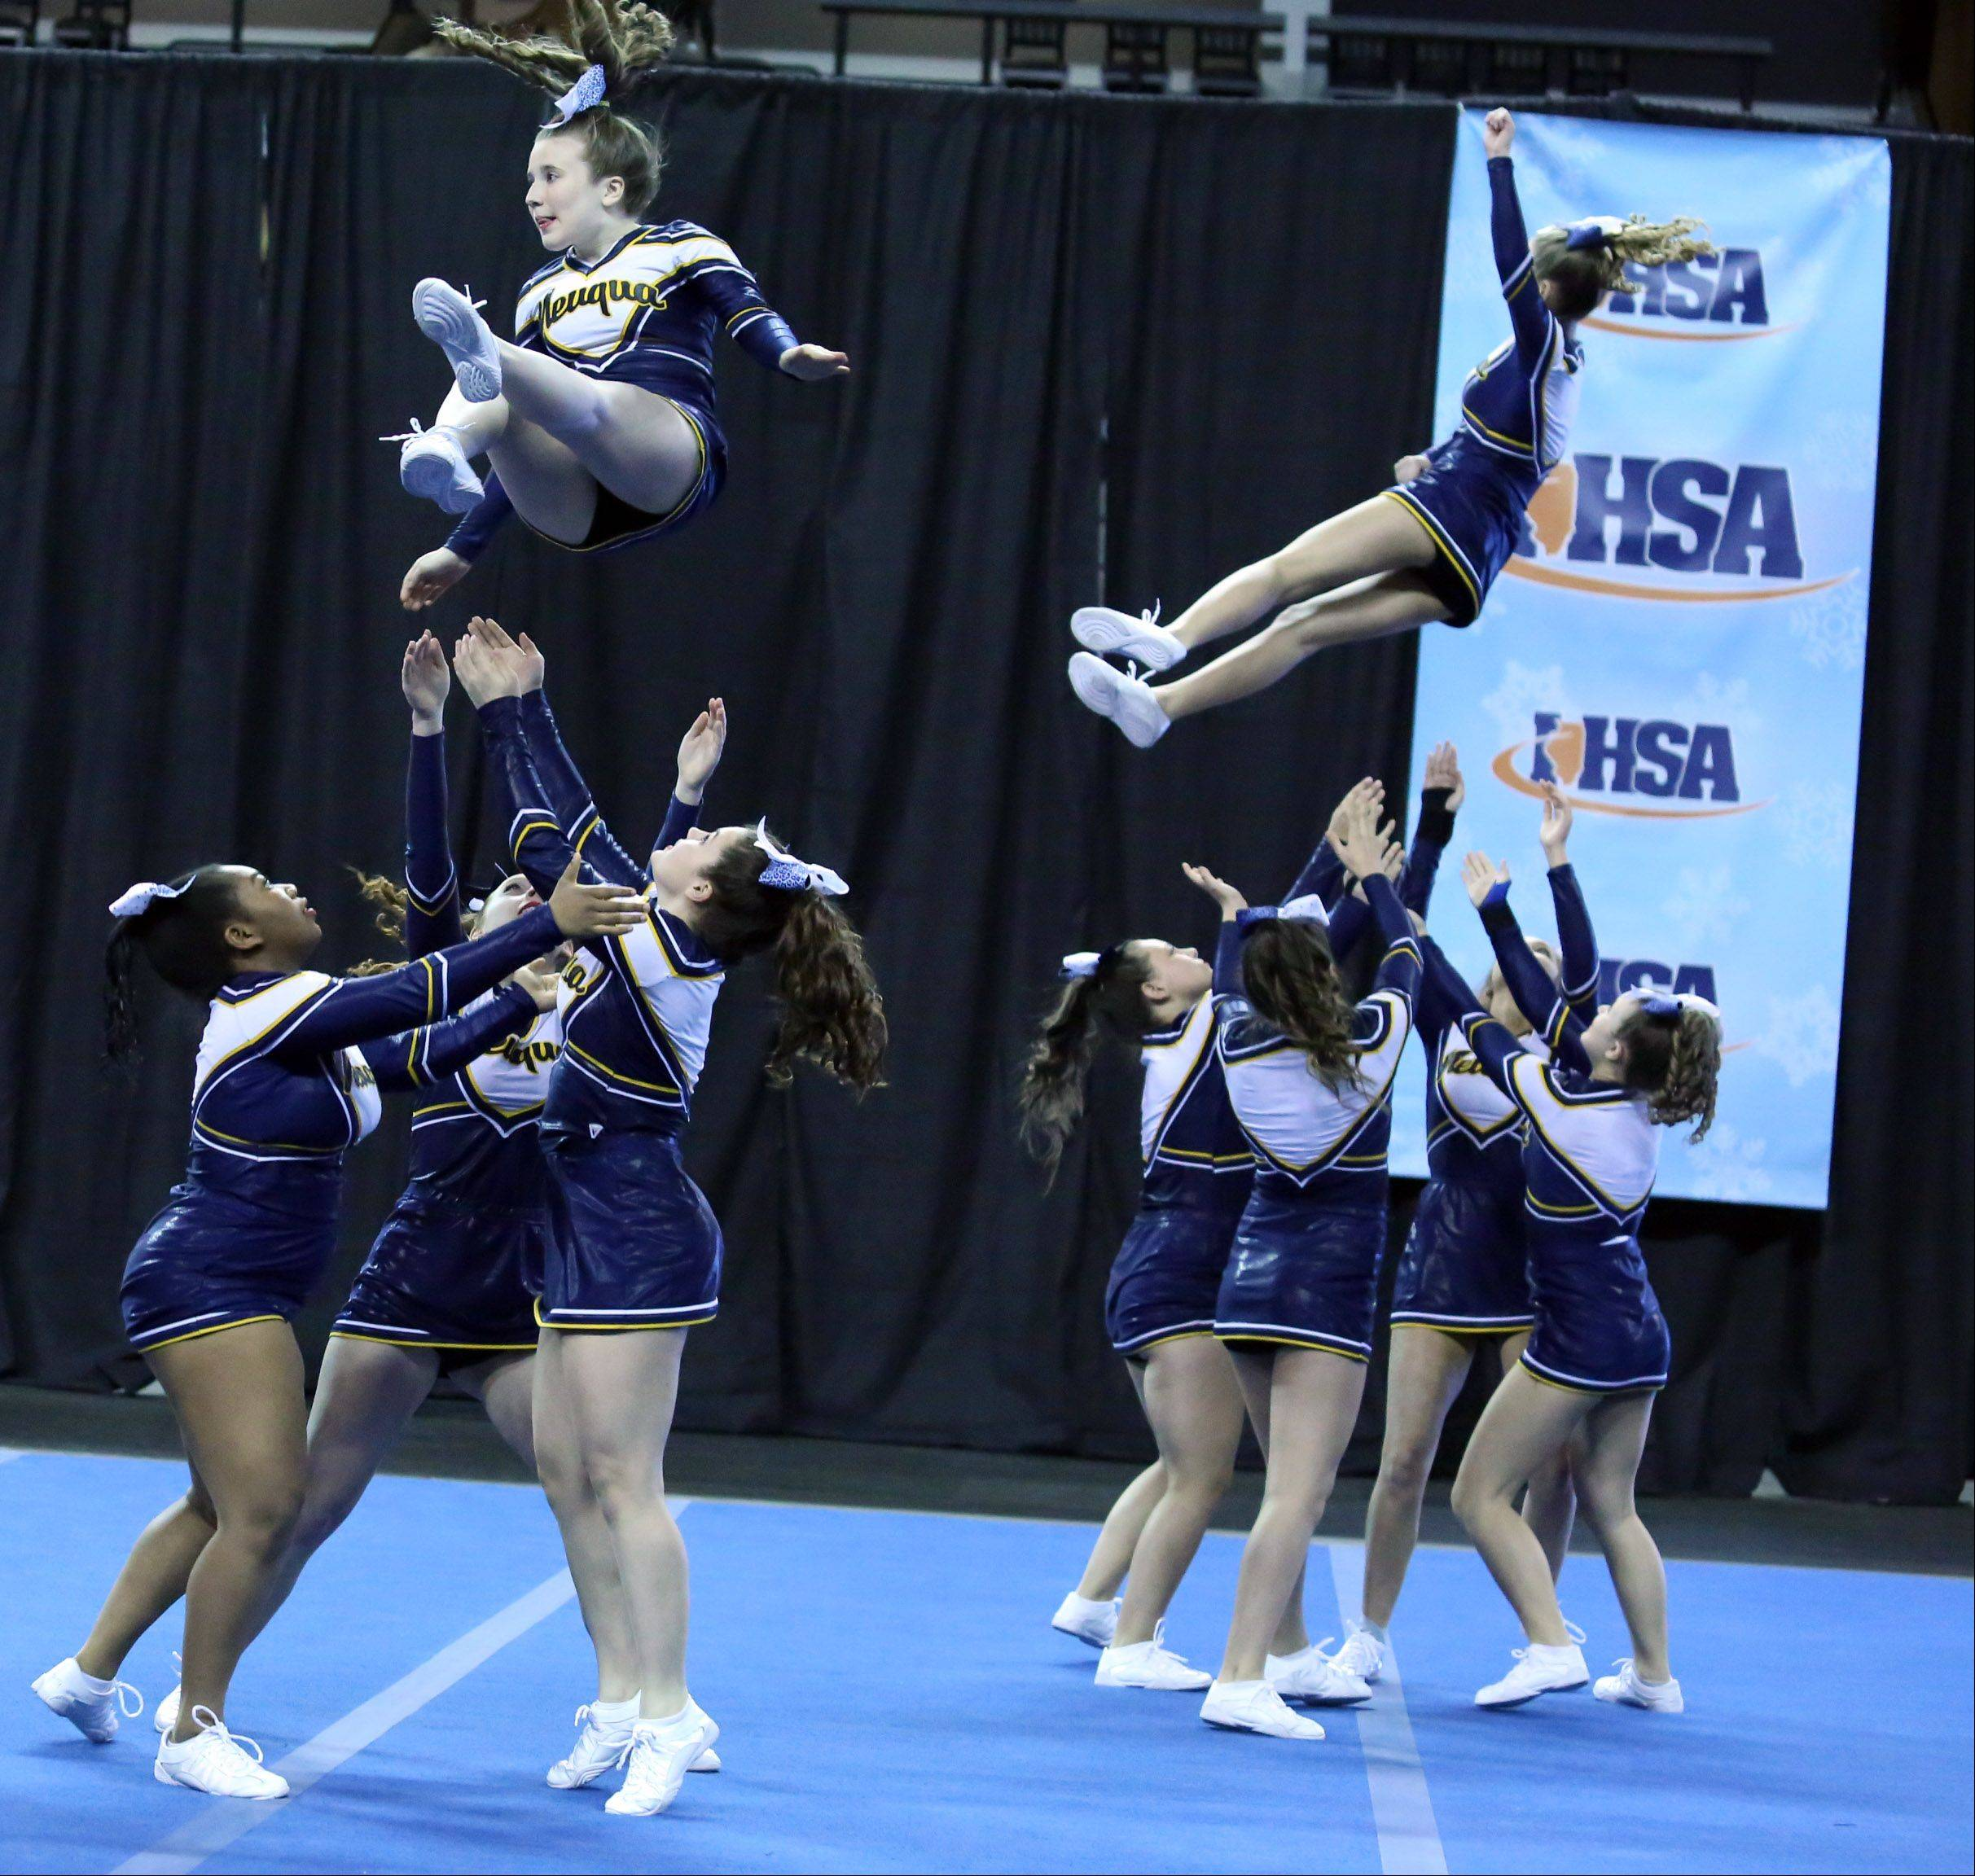 Neuqua Valley High School cheer team competes in the IHSA Winter Meltdown Cheerleading and Dance Competition at Sears Centre Arena on Saturday in Hoffman Estates.